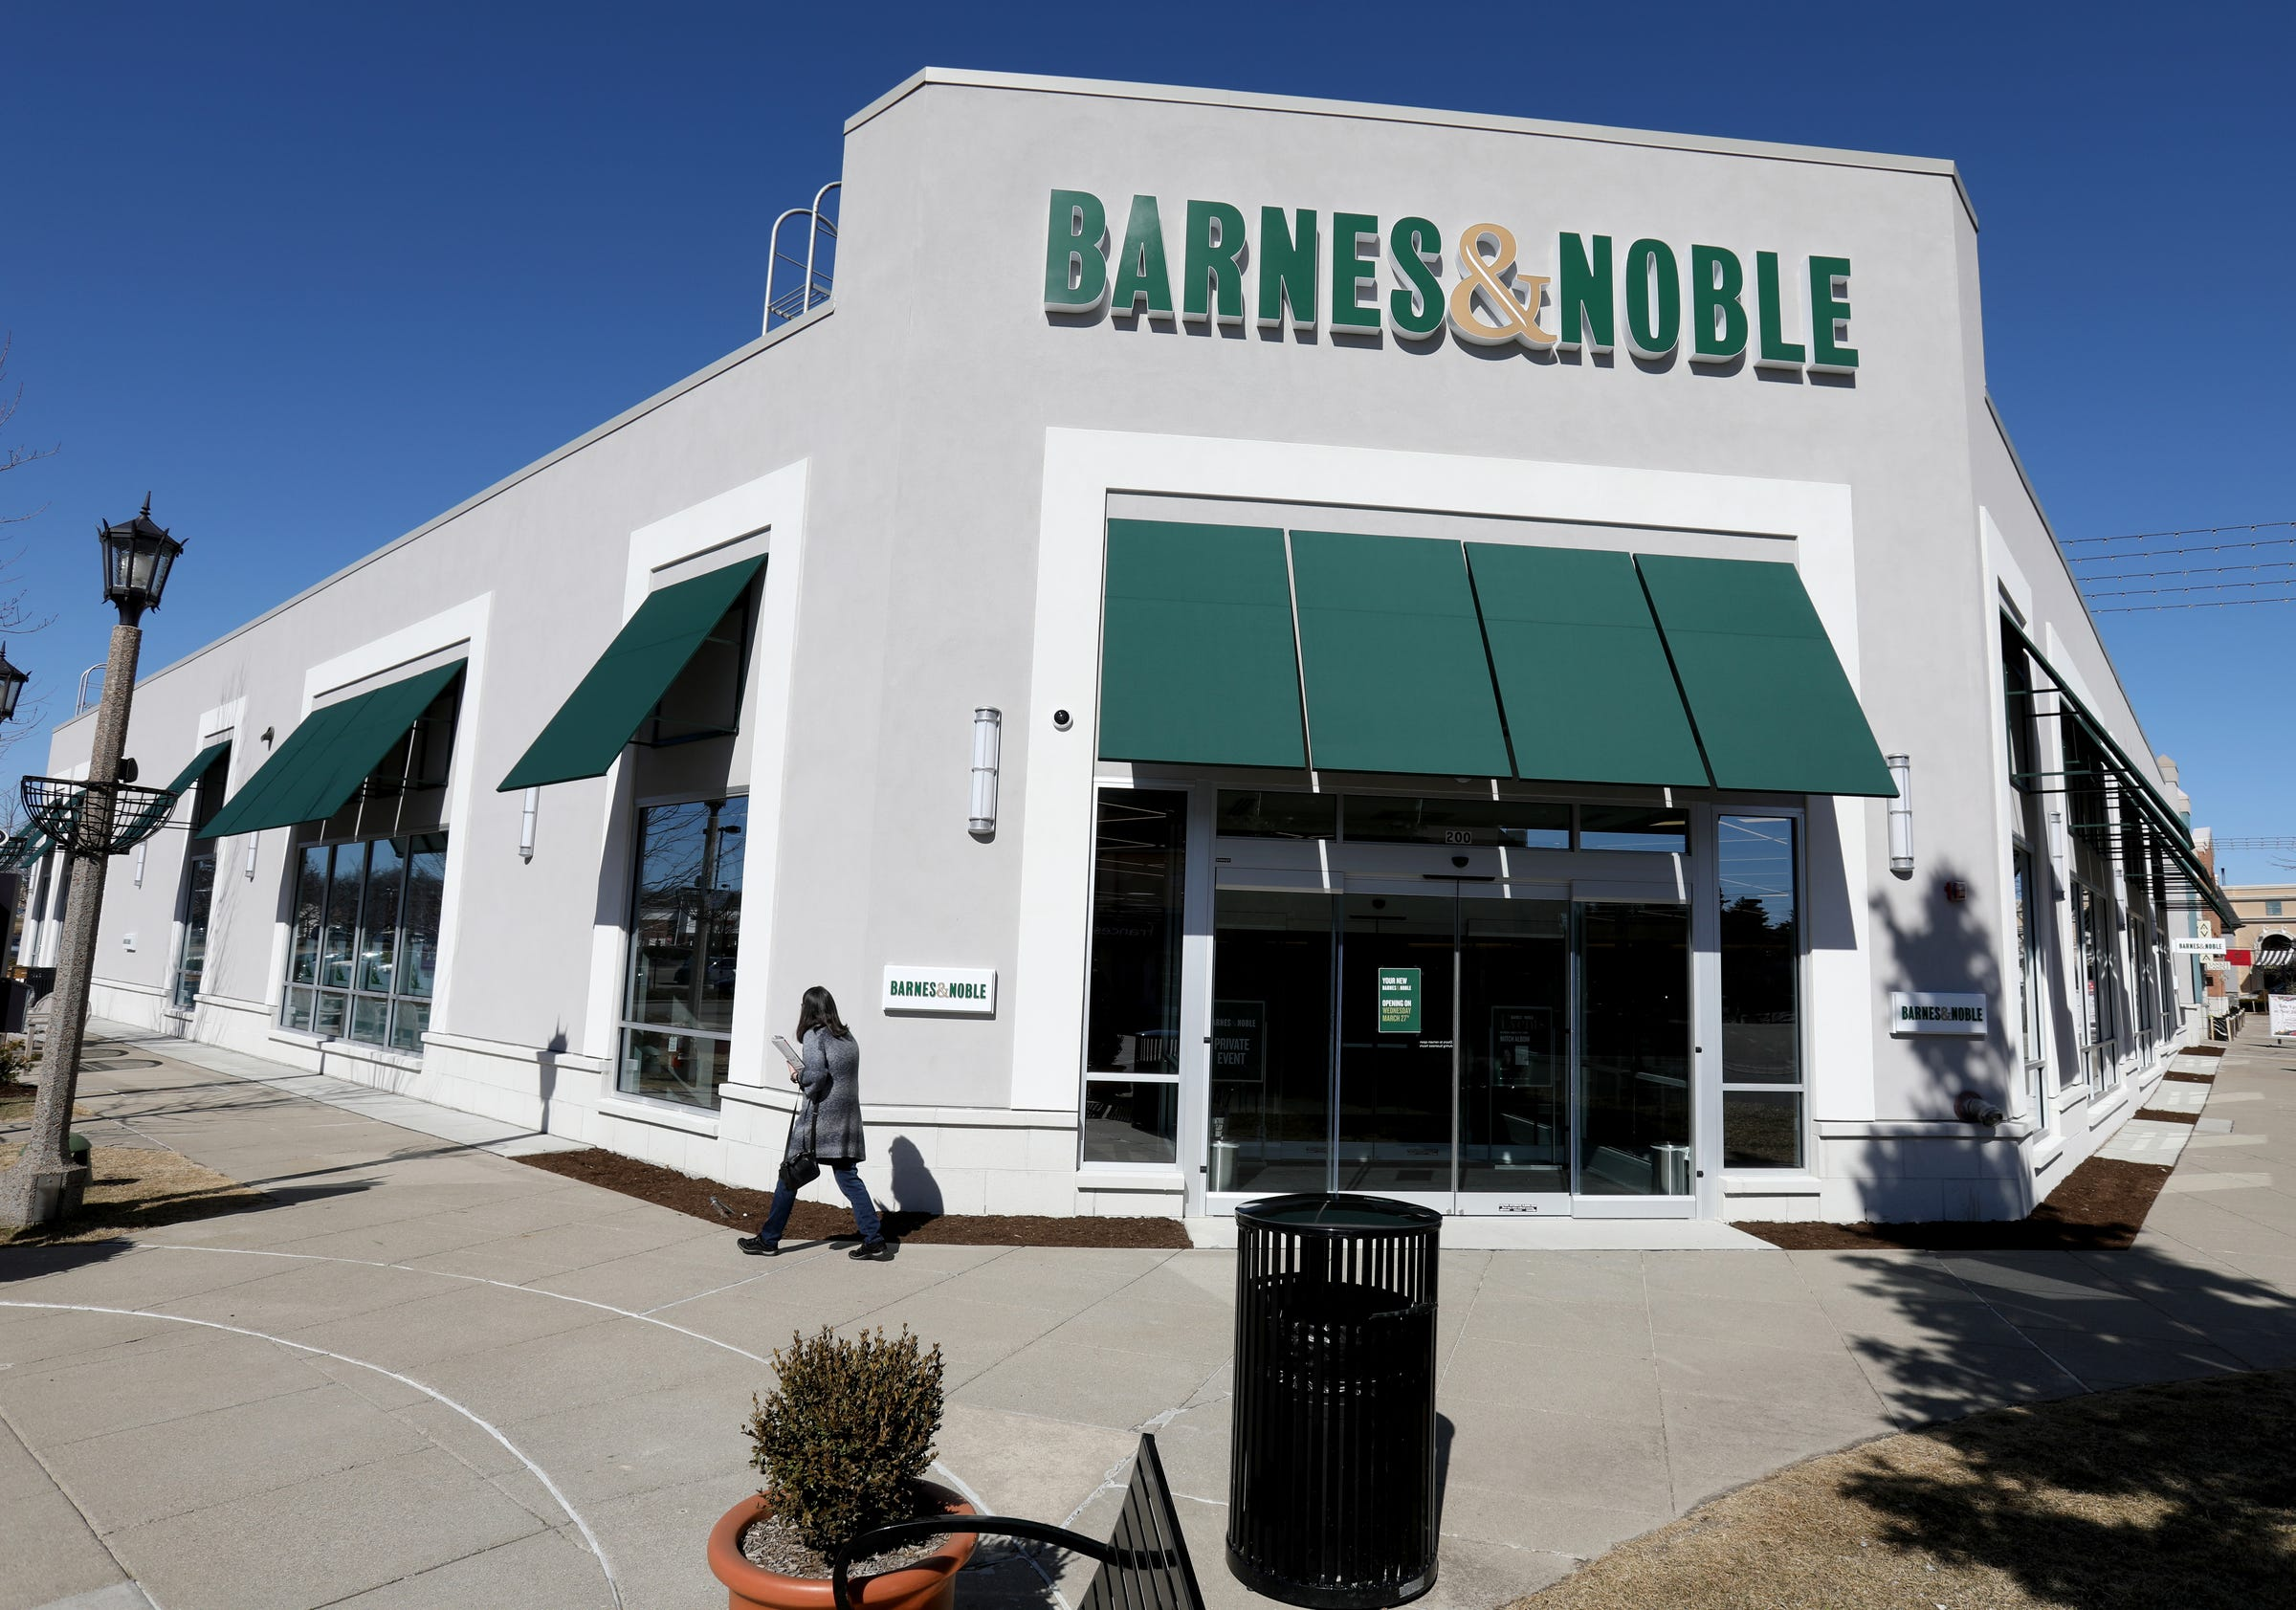 barnes \u0026 noble to open prototype bookstore in rochester hills